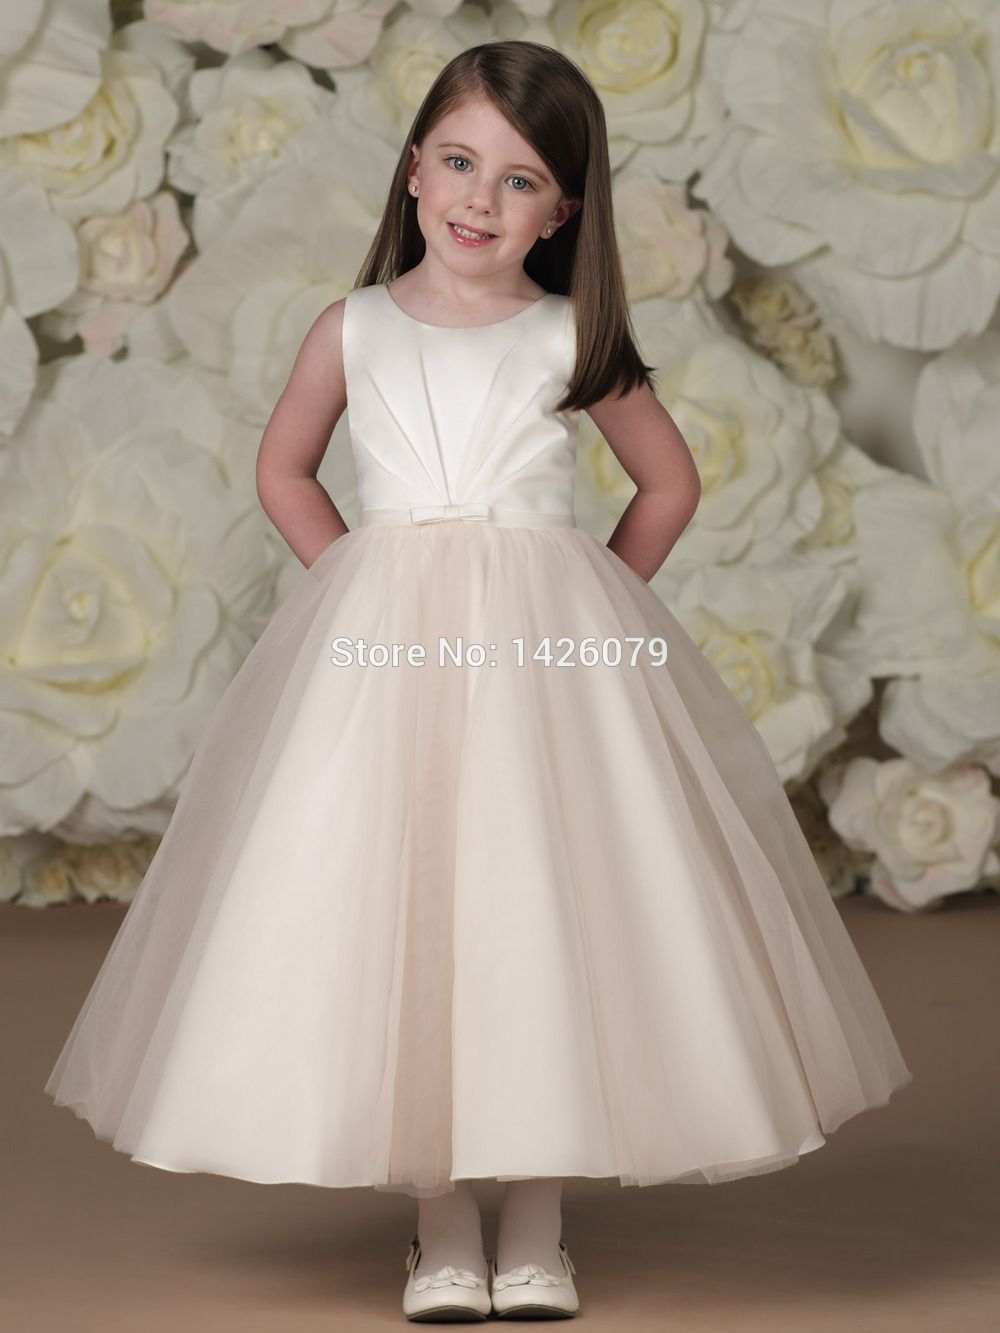 Flower girls dress pattern images for yr old girls google search